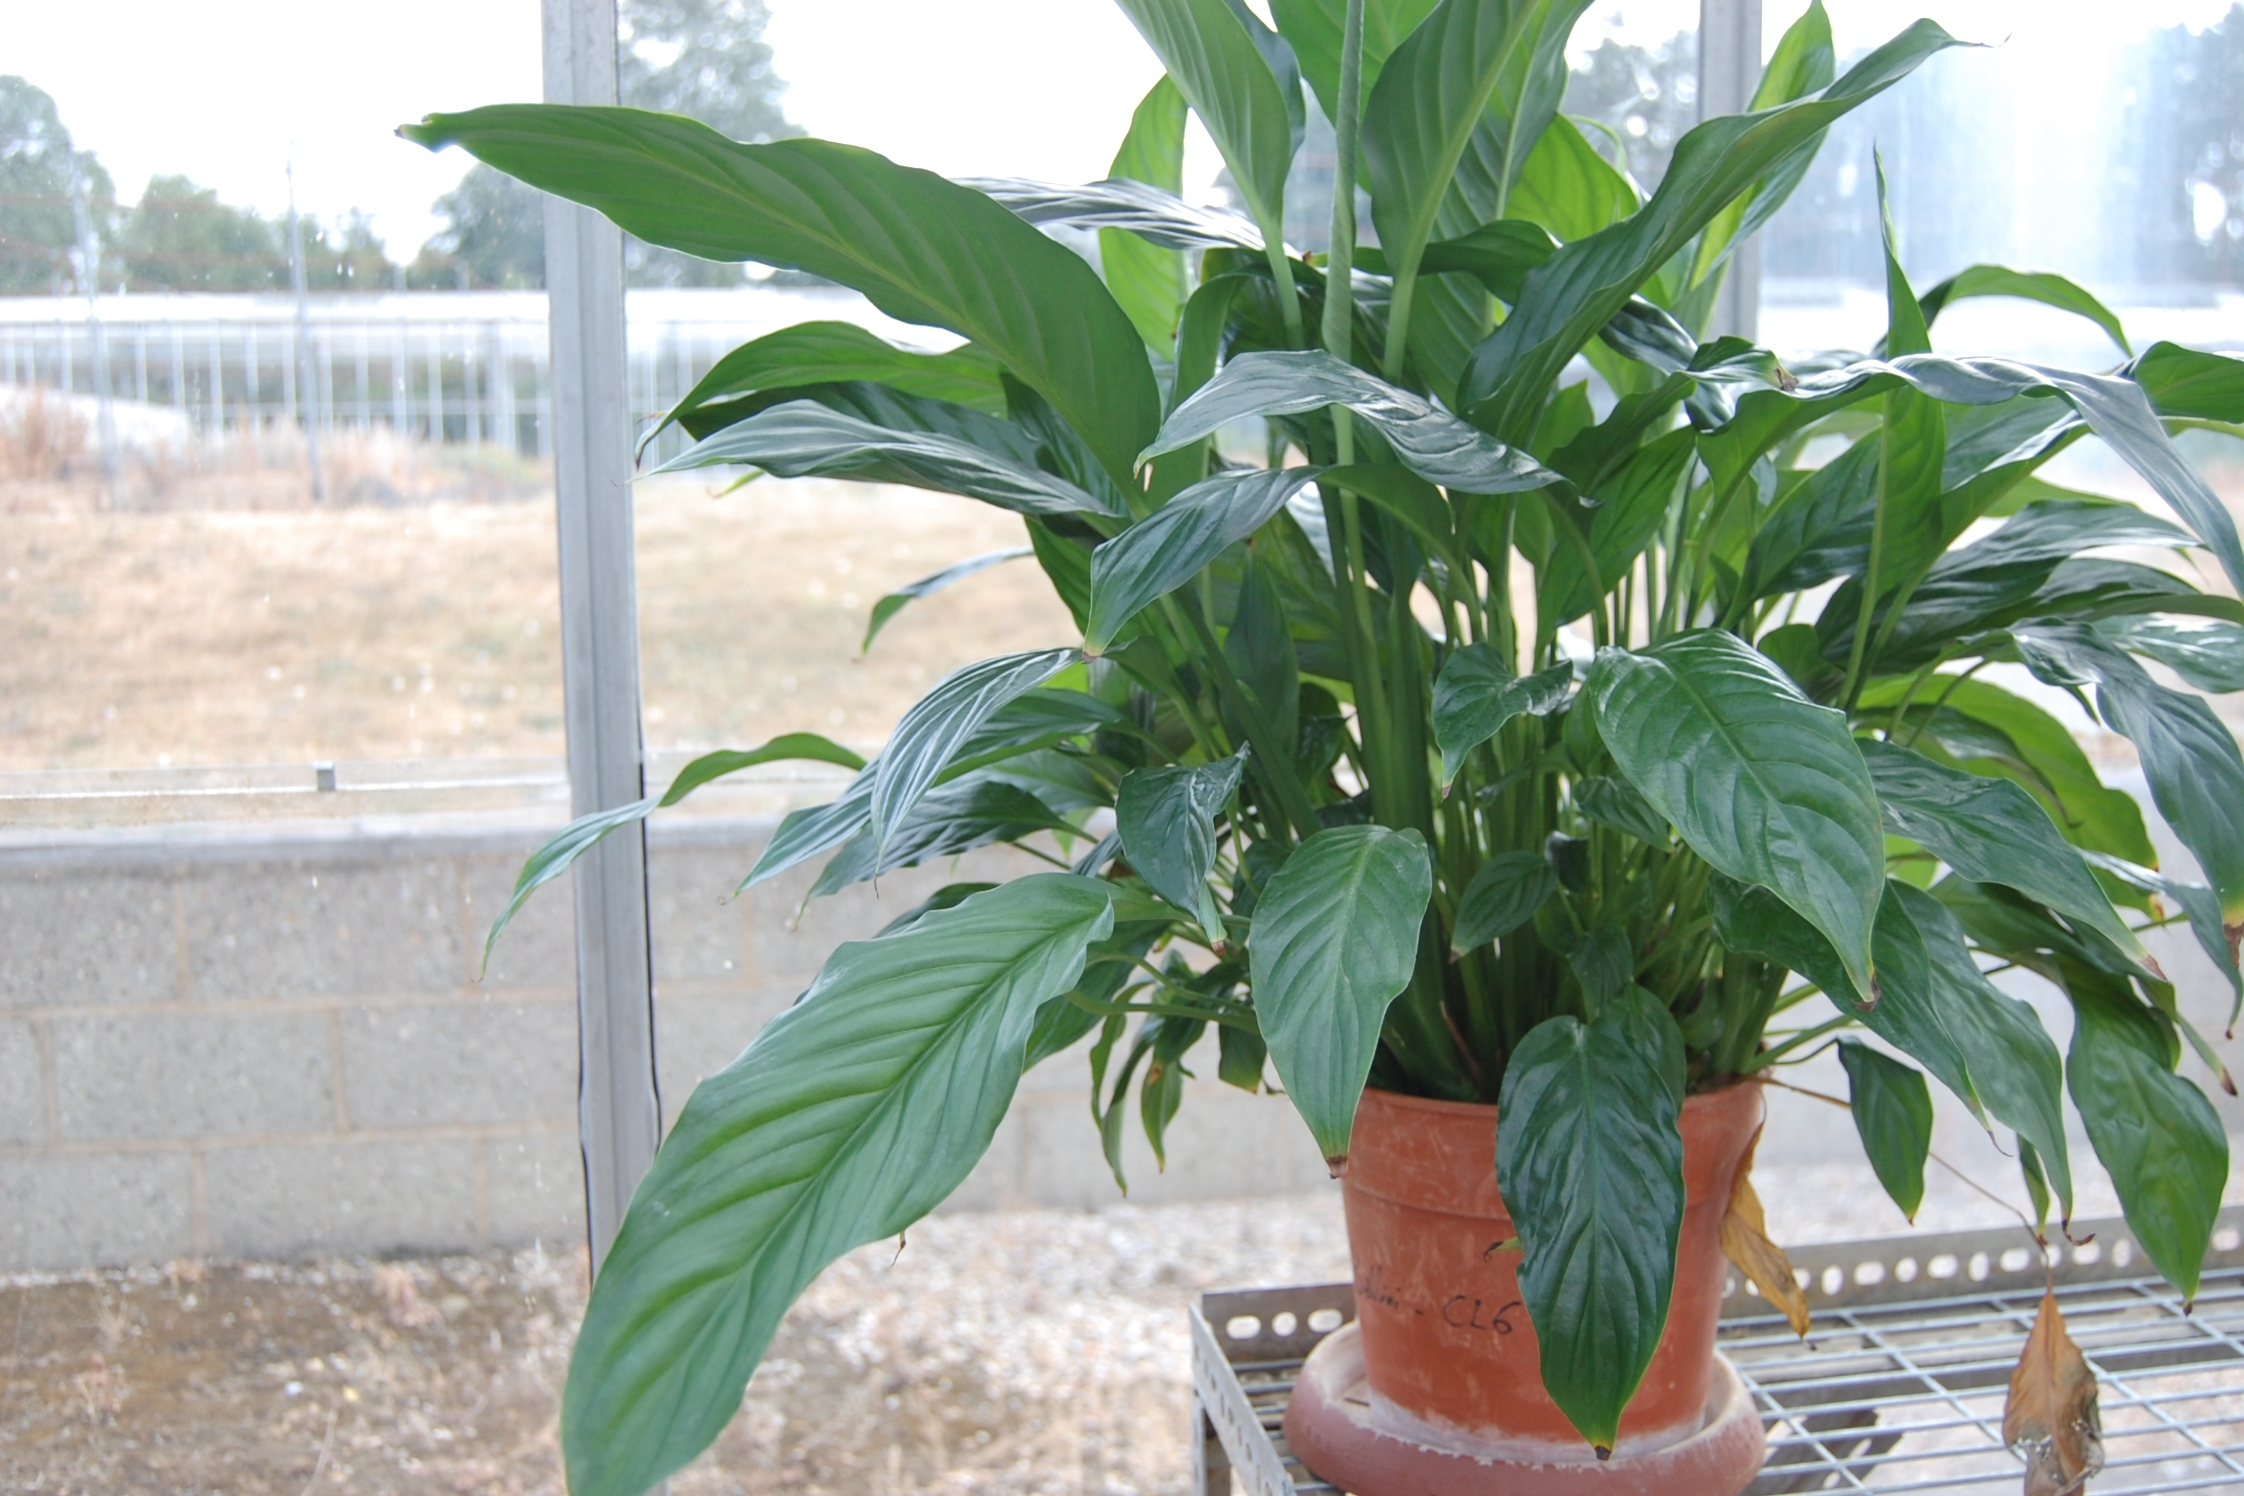 Spathiphyllums (peace lilies) are one of the best plants for removing CO2 and pollutants from the air. Photograph Curtis Gubb.